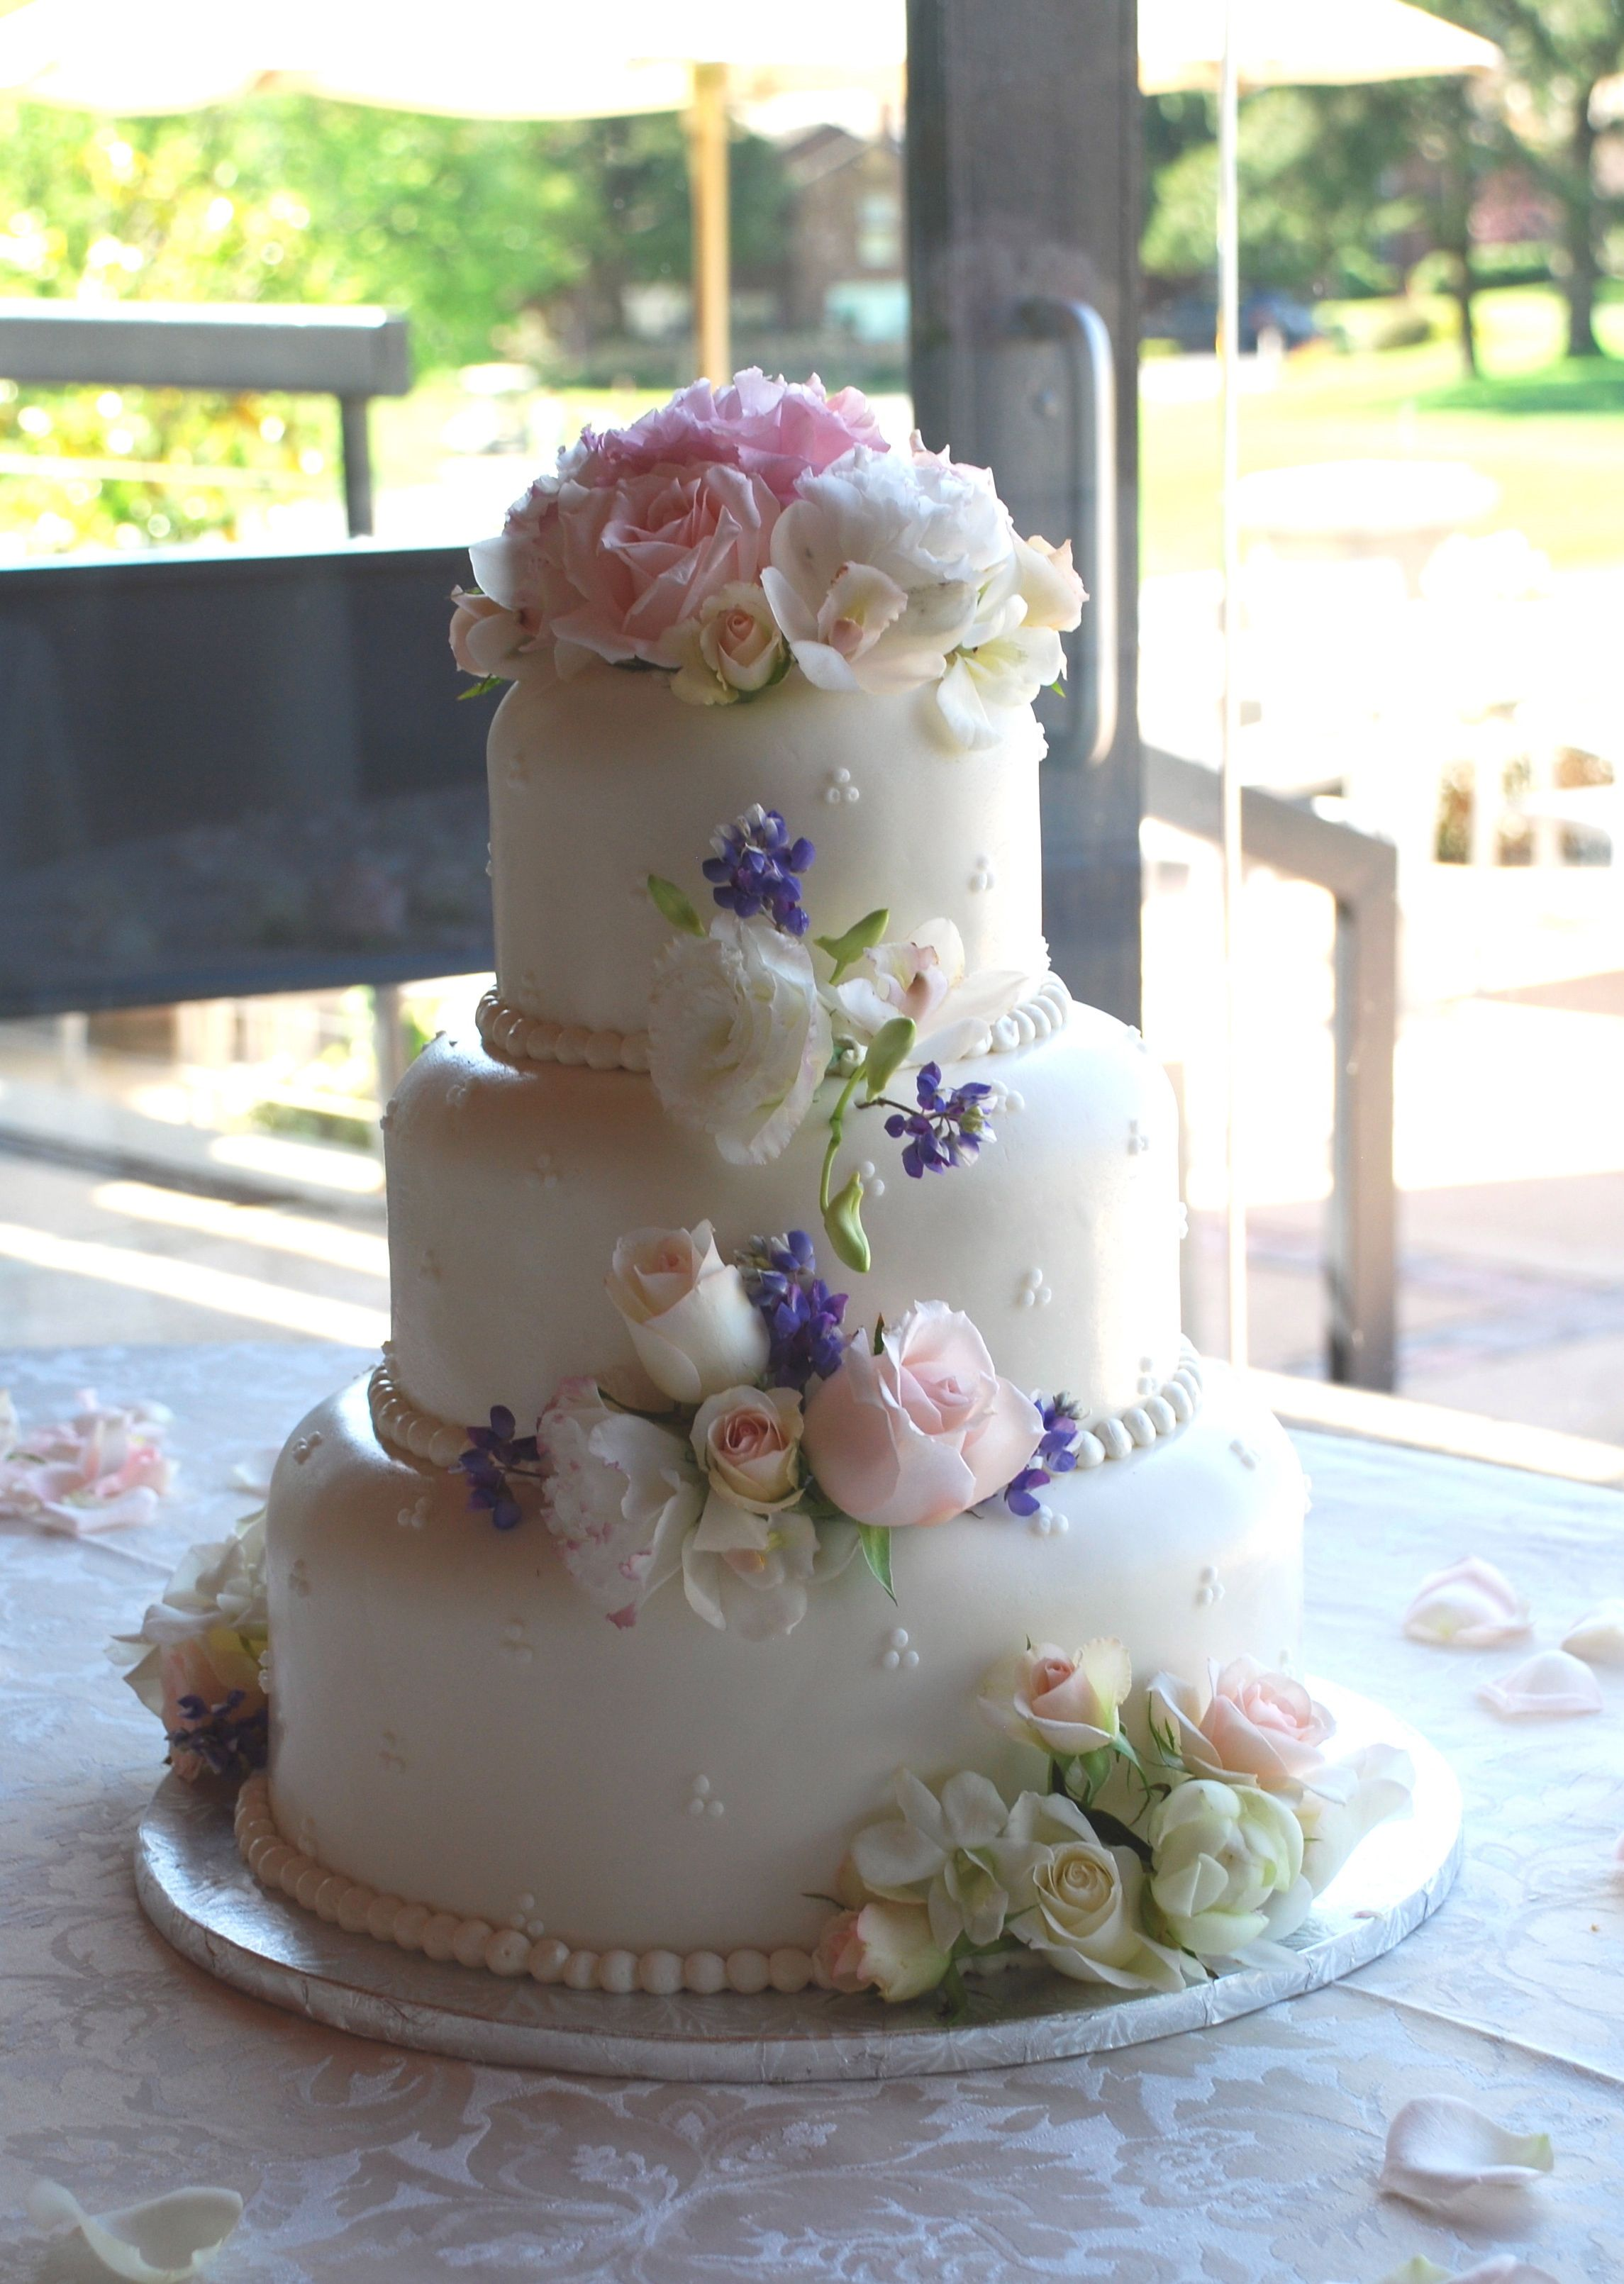 Romantic cake decoration with roses, lisianthus, orchids, and  blue lupine.